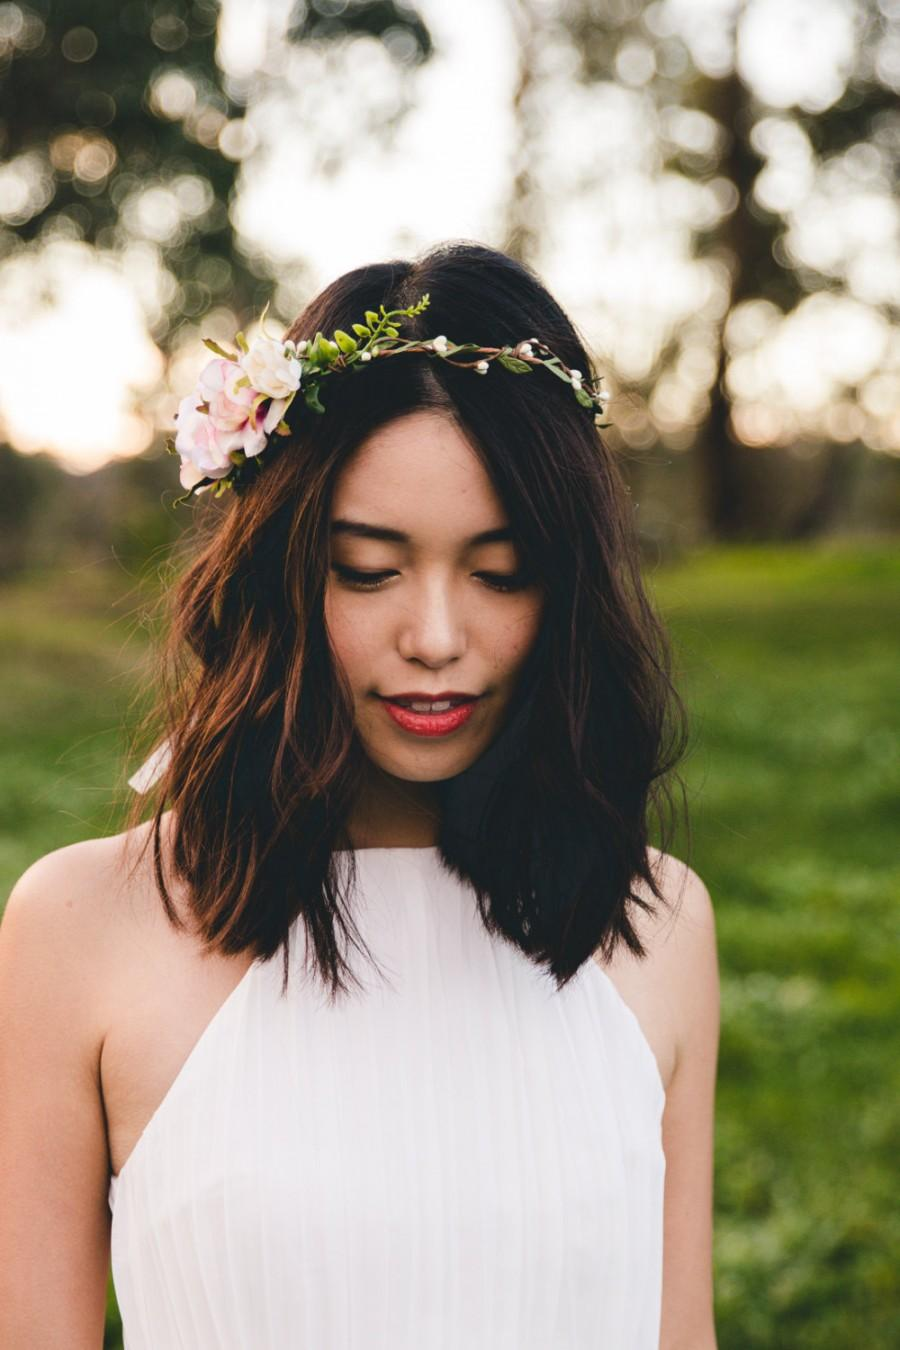 Blossom and forest asymmetrical bridal wedding flower crown blossom and forest asymmetrical bridal wedding flower crown florette multi colour bohemian floral headpiece flower crown dhlflorist Images